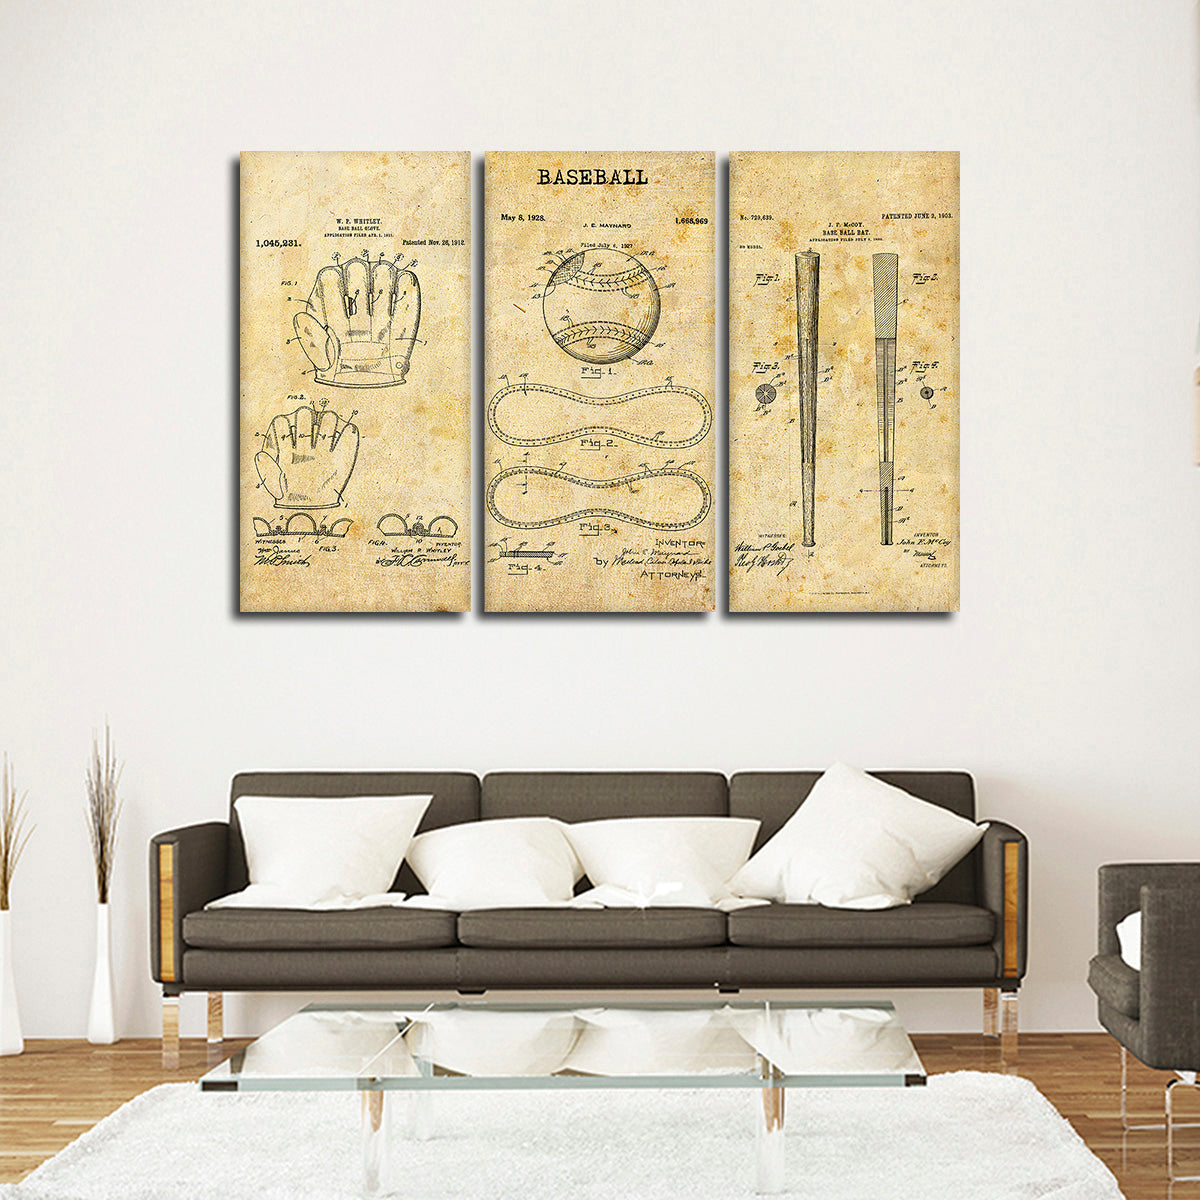 Baseball Patent Compilation Multi Panel Canvas Wall Art | ElephantStock